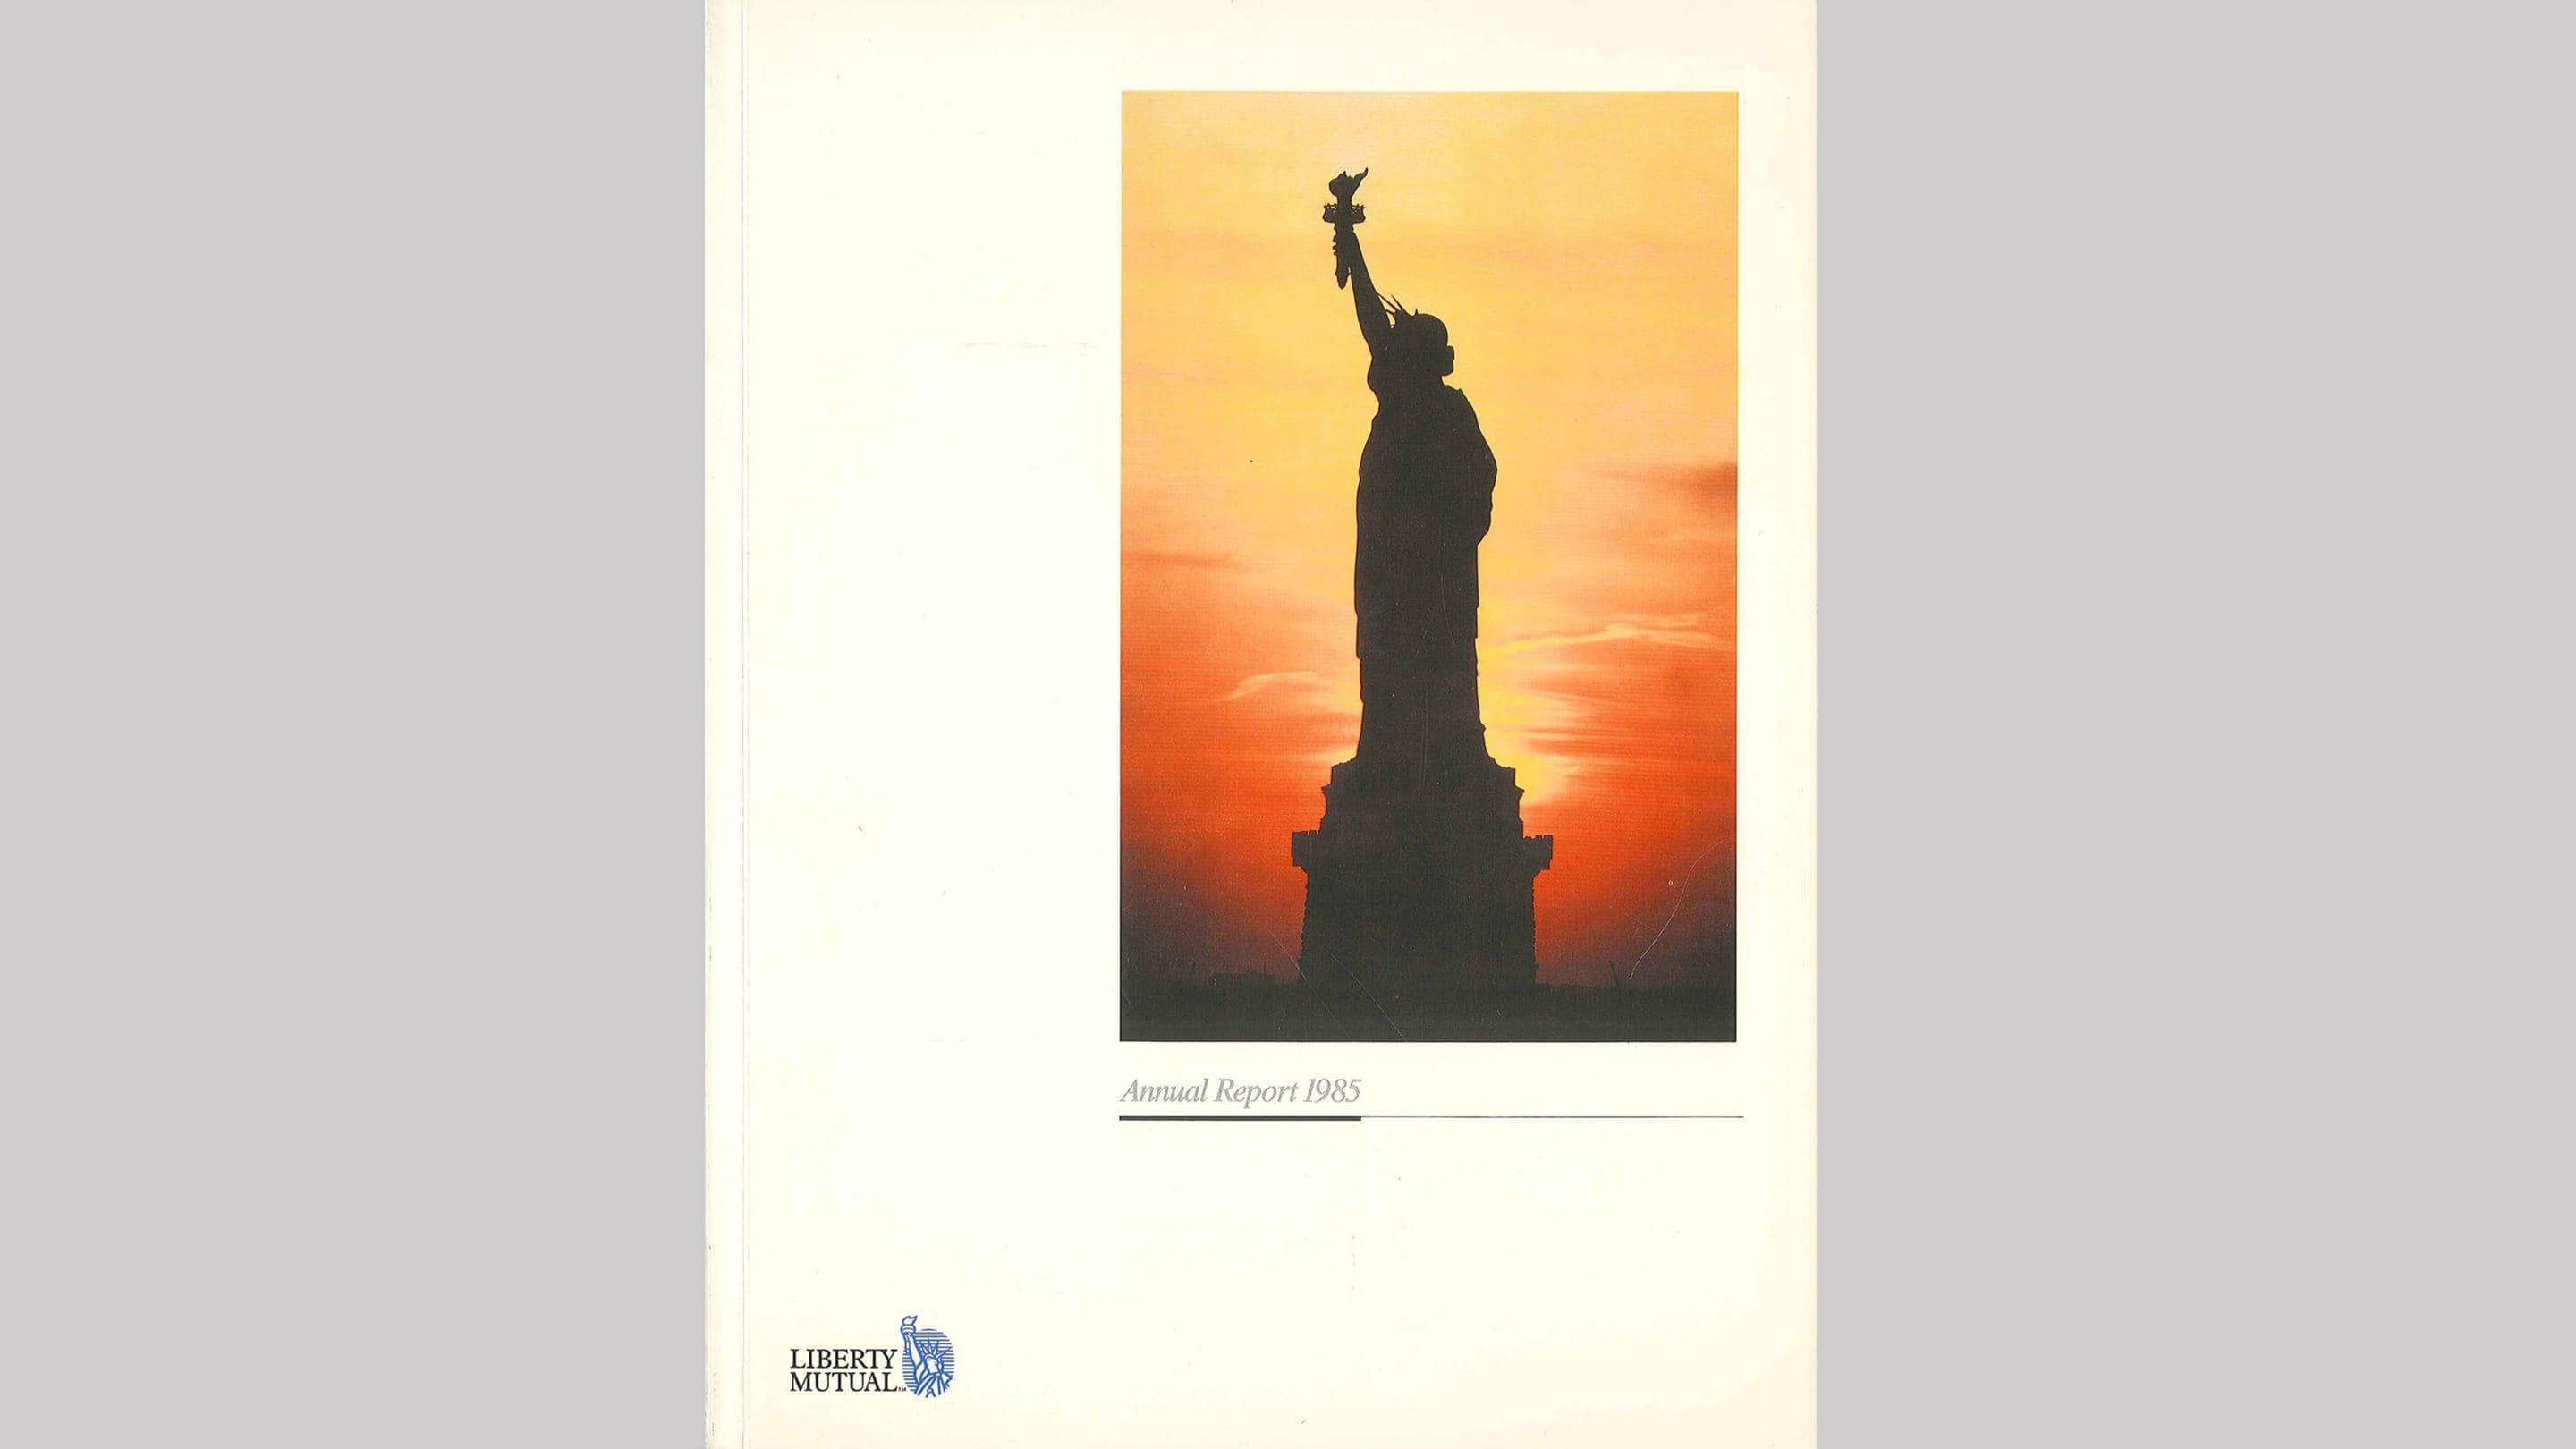 (slide 9 of 12) A 1985 annual report cover by Liberty Mutual Insurance .